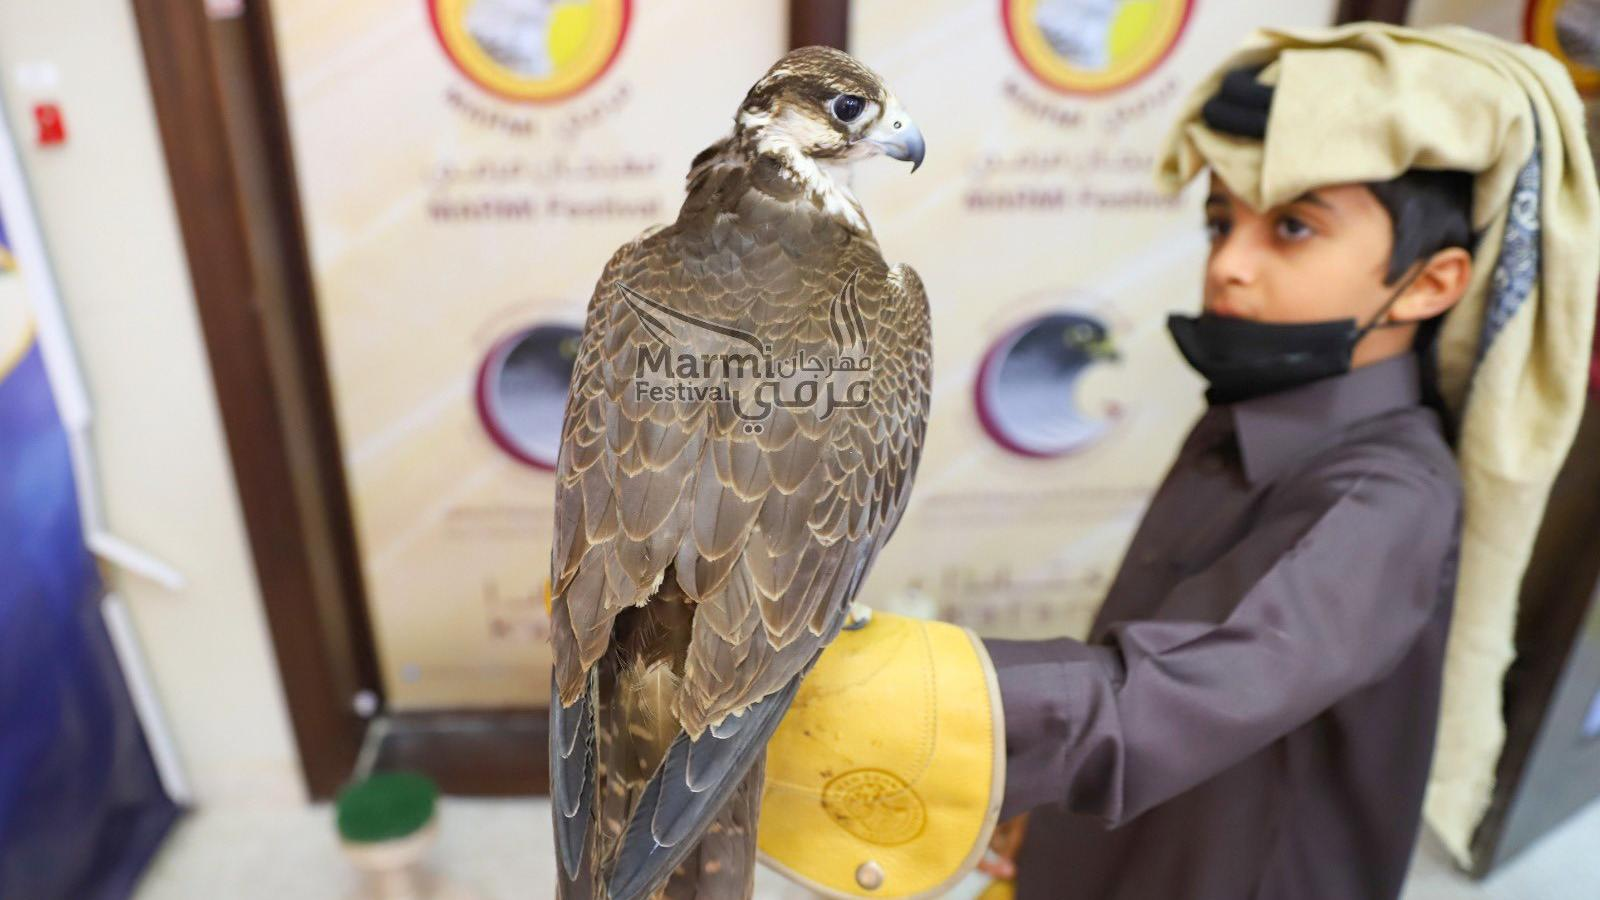 A start to the new year 2021, Qatari style, with the 12th edition of the Marmi Festival